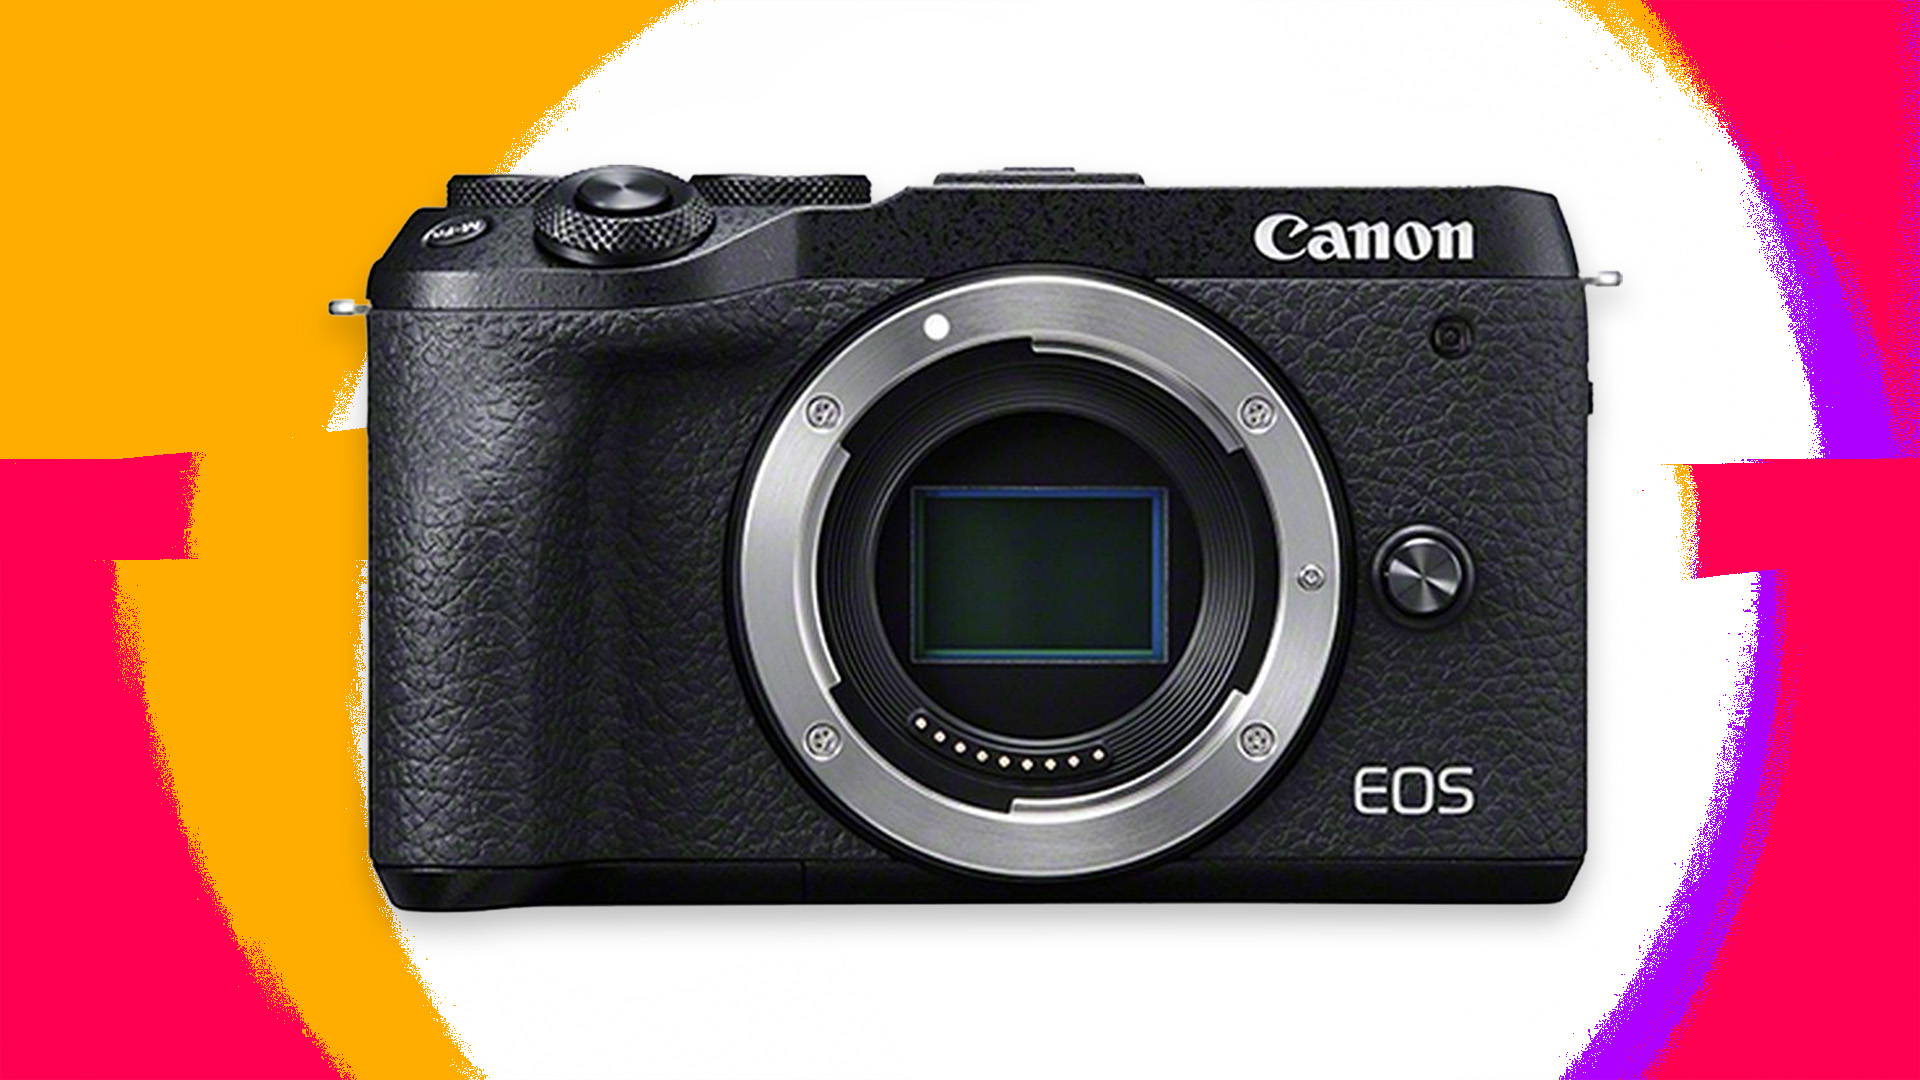 The Canon EOS M6 Mark II mirrorless camera without a lens